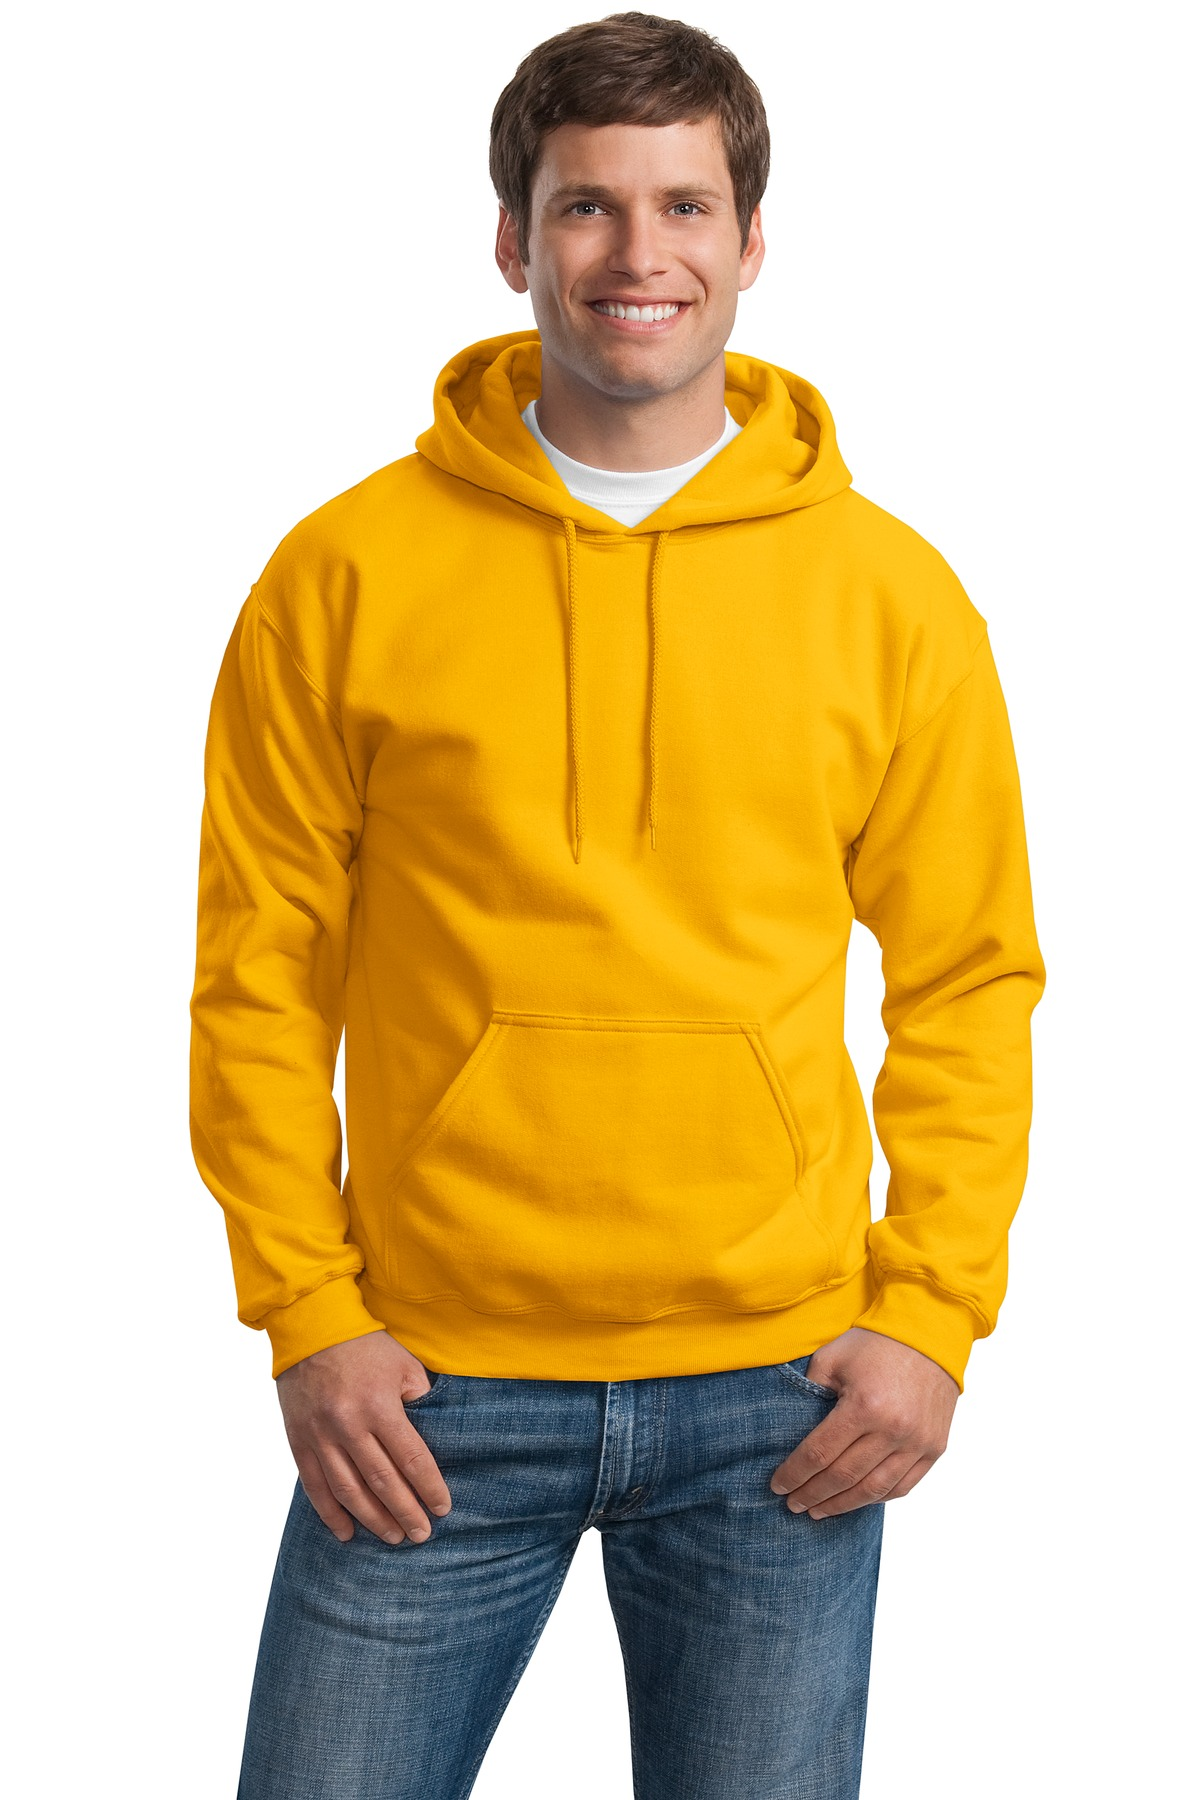 Gildan Men's Heavy Blend Hooded Sweatshirt. 18500. ba029149f8